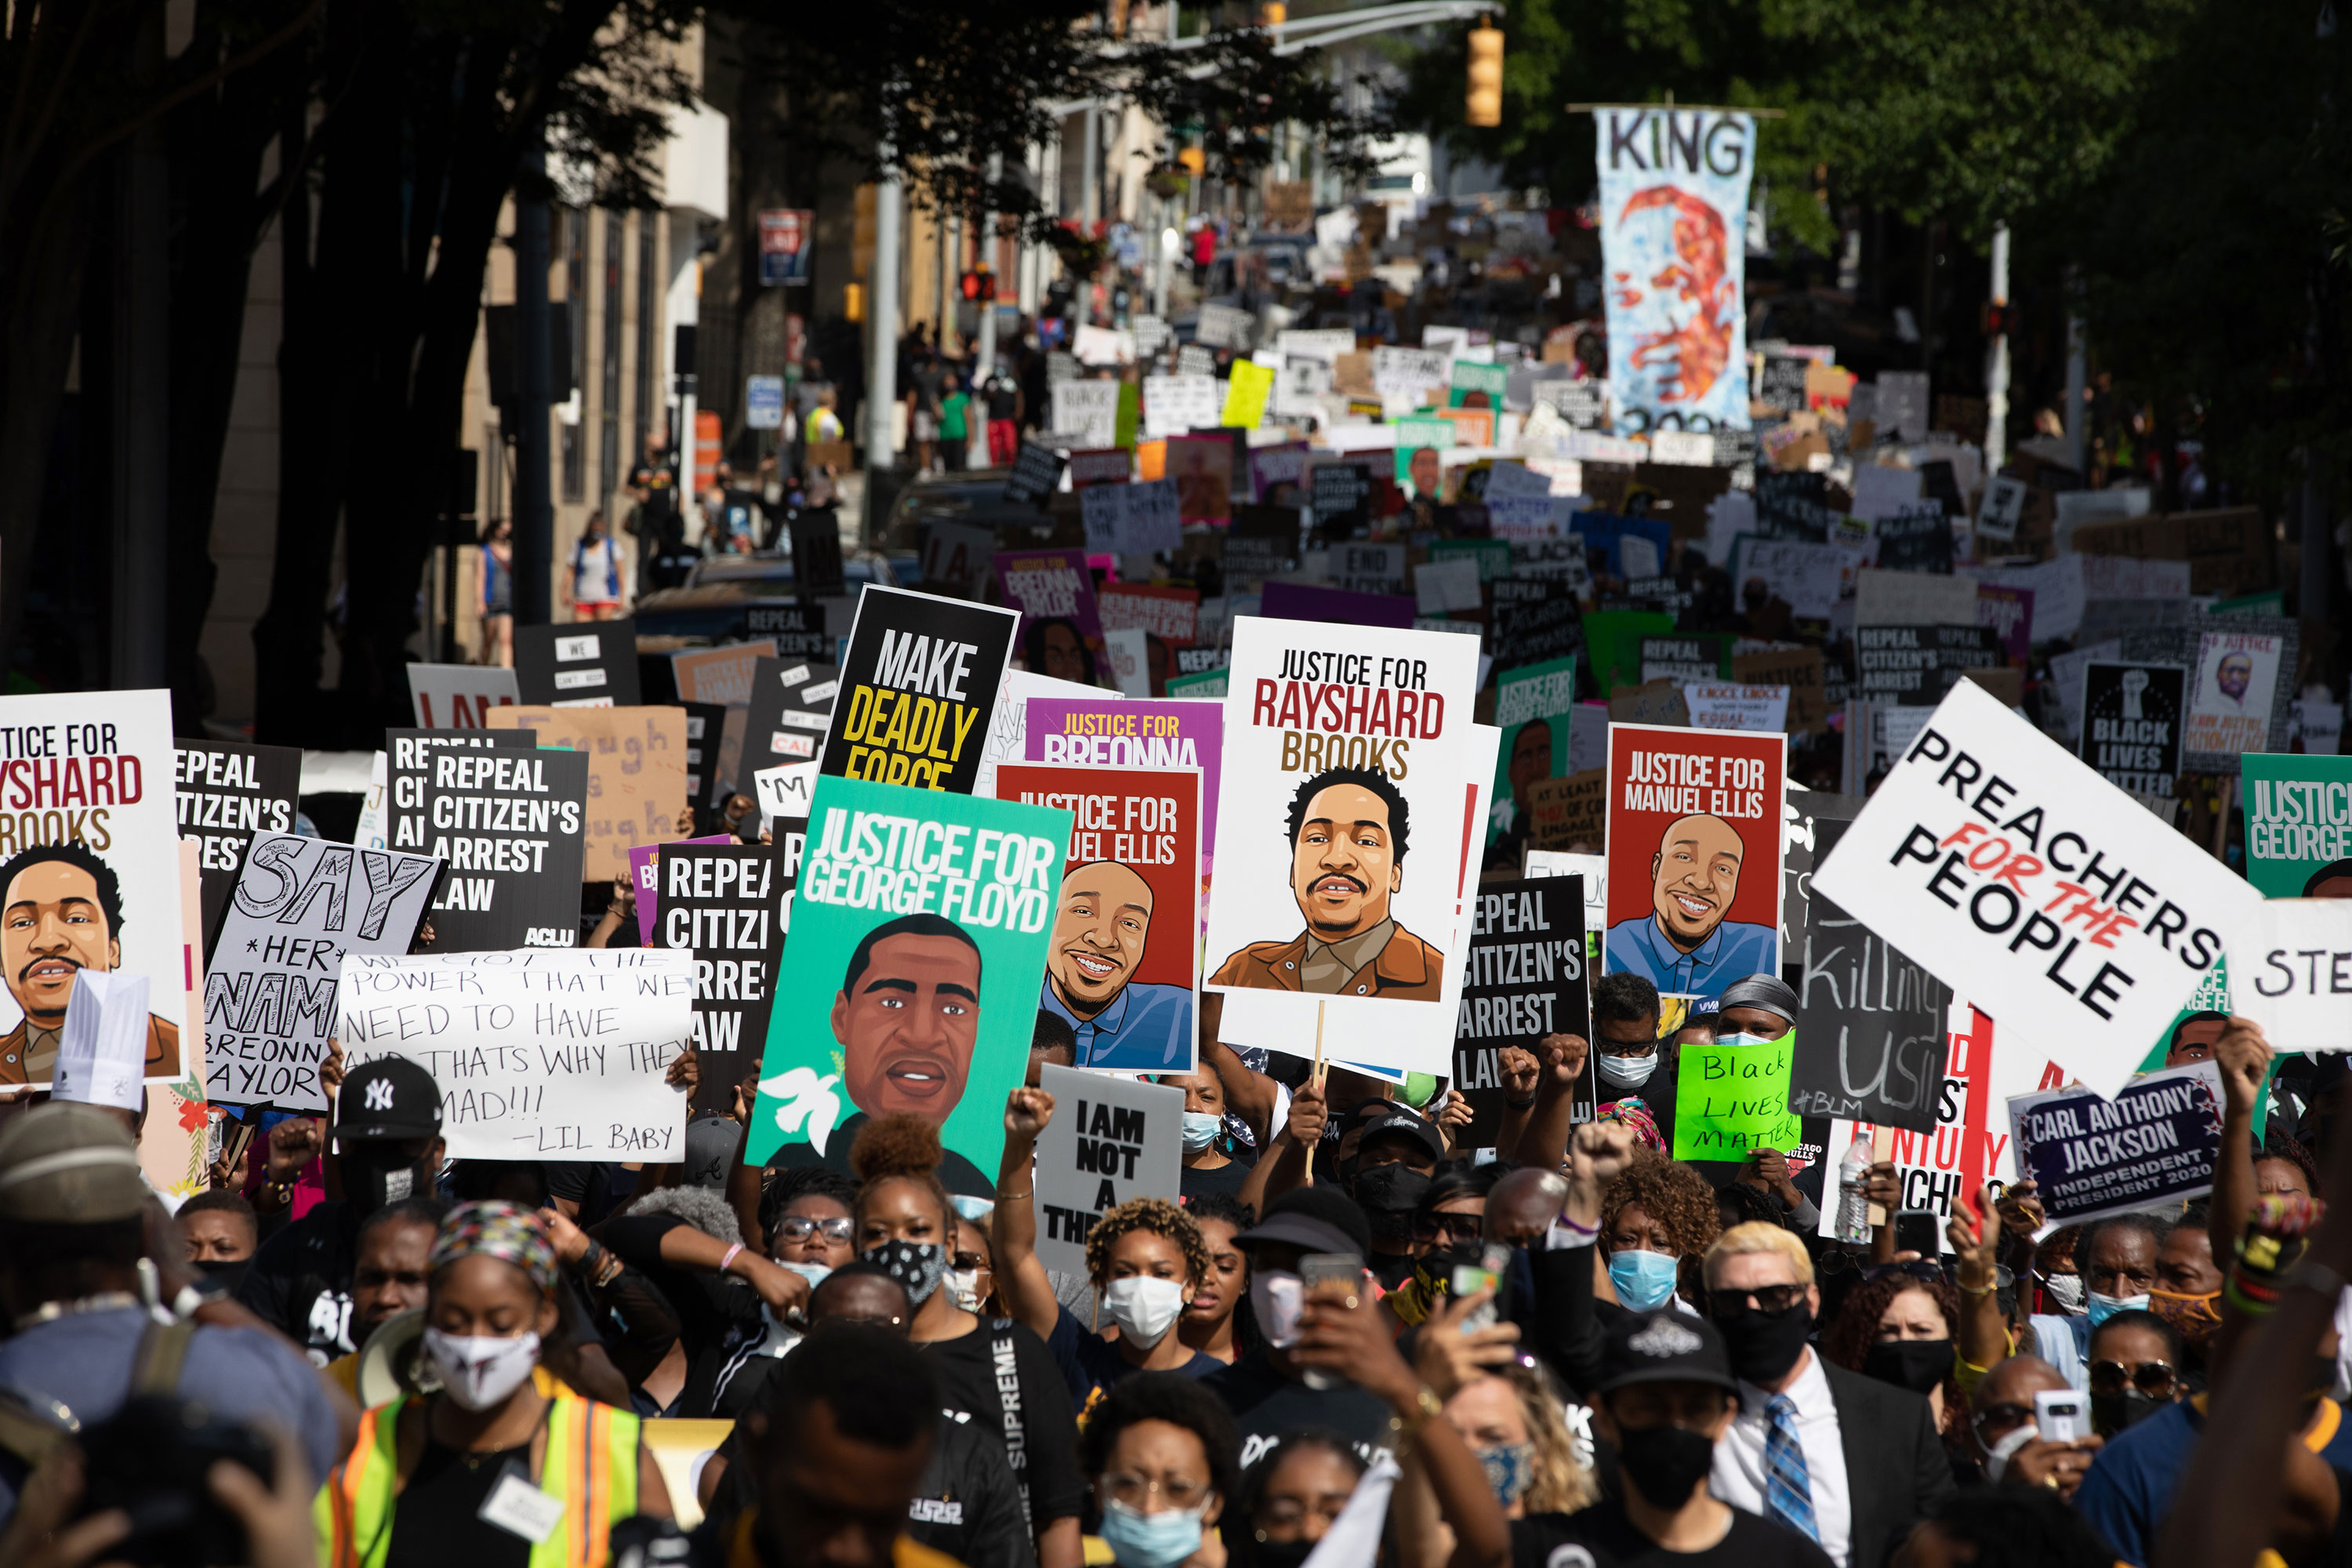 Protesters take part in a march organized by NAACP on June 15 in Atlanta.